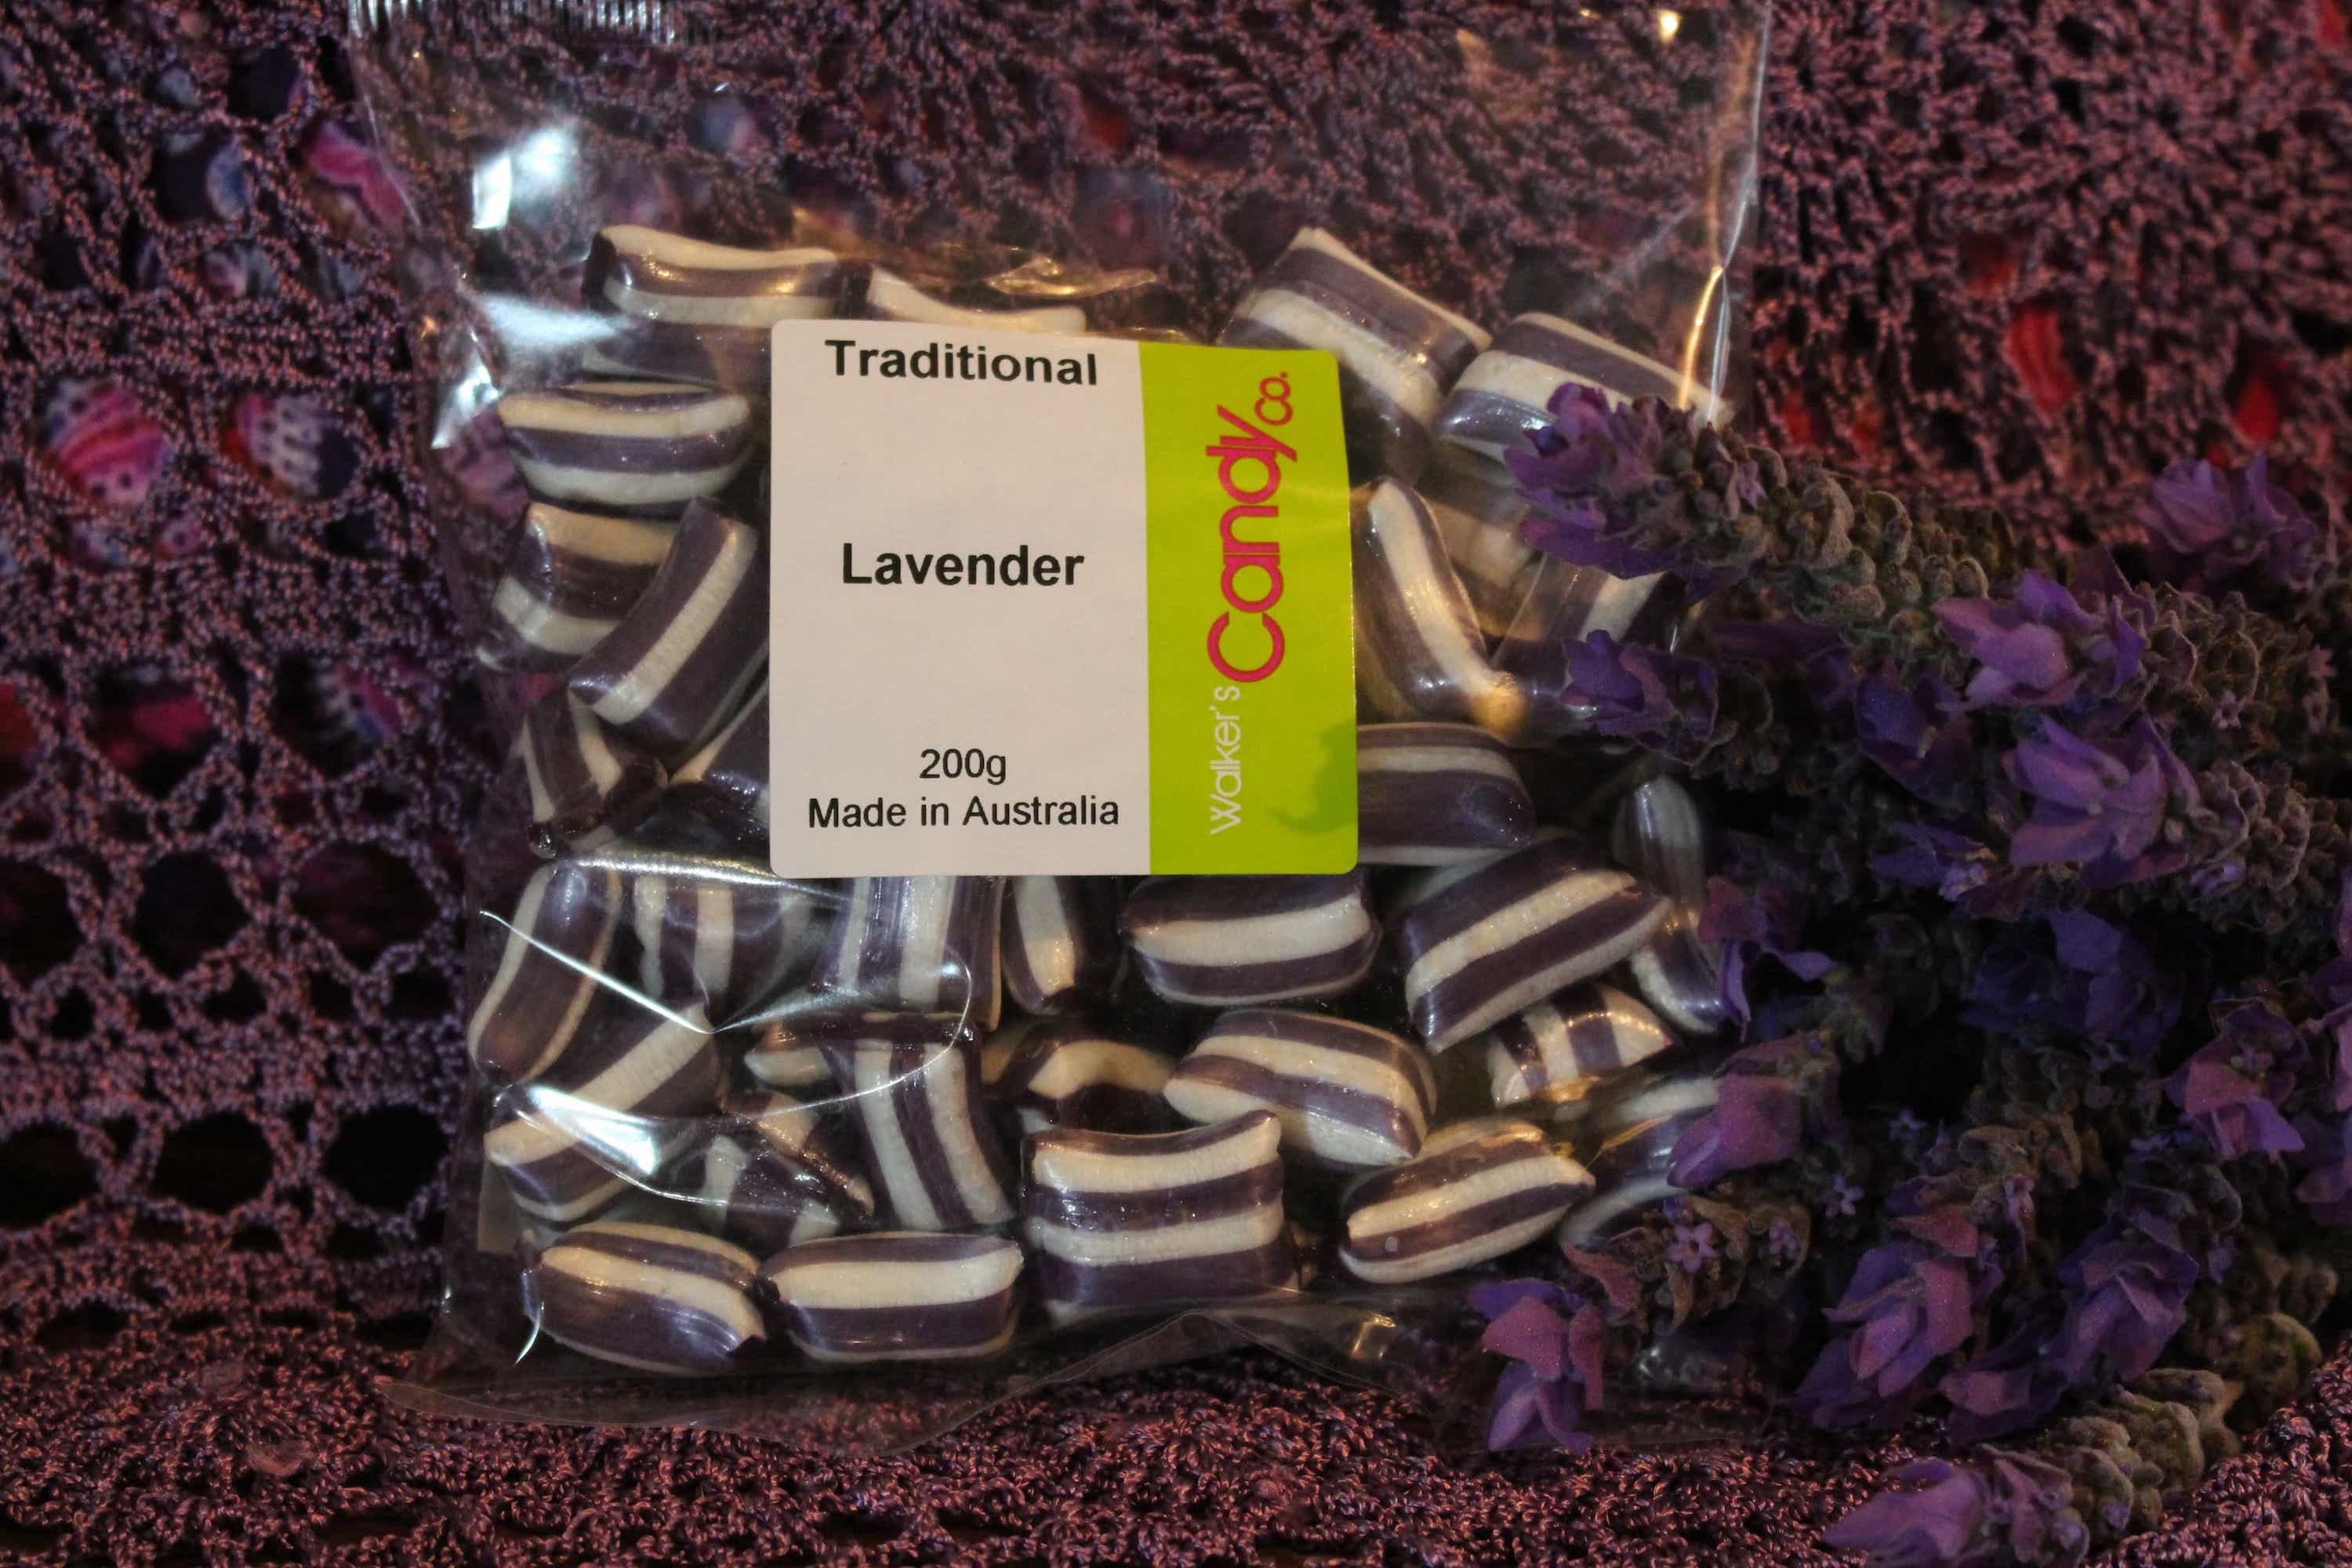 Photograph of an Lavender Boiled Lollies 200g product